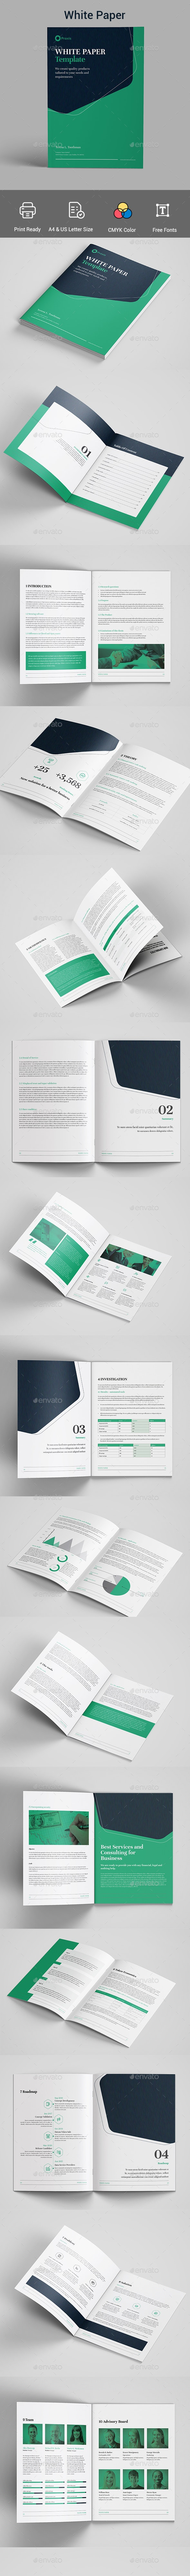 White Paper - Corporate Brochures